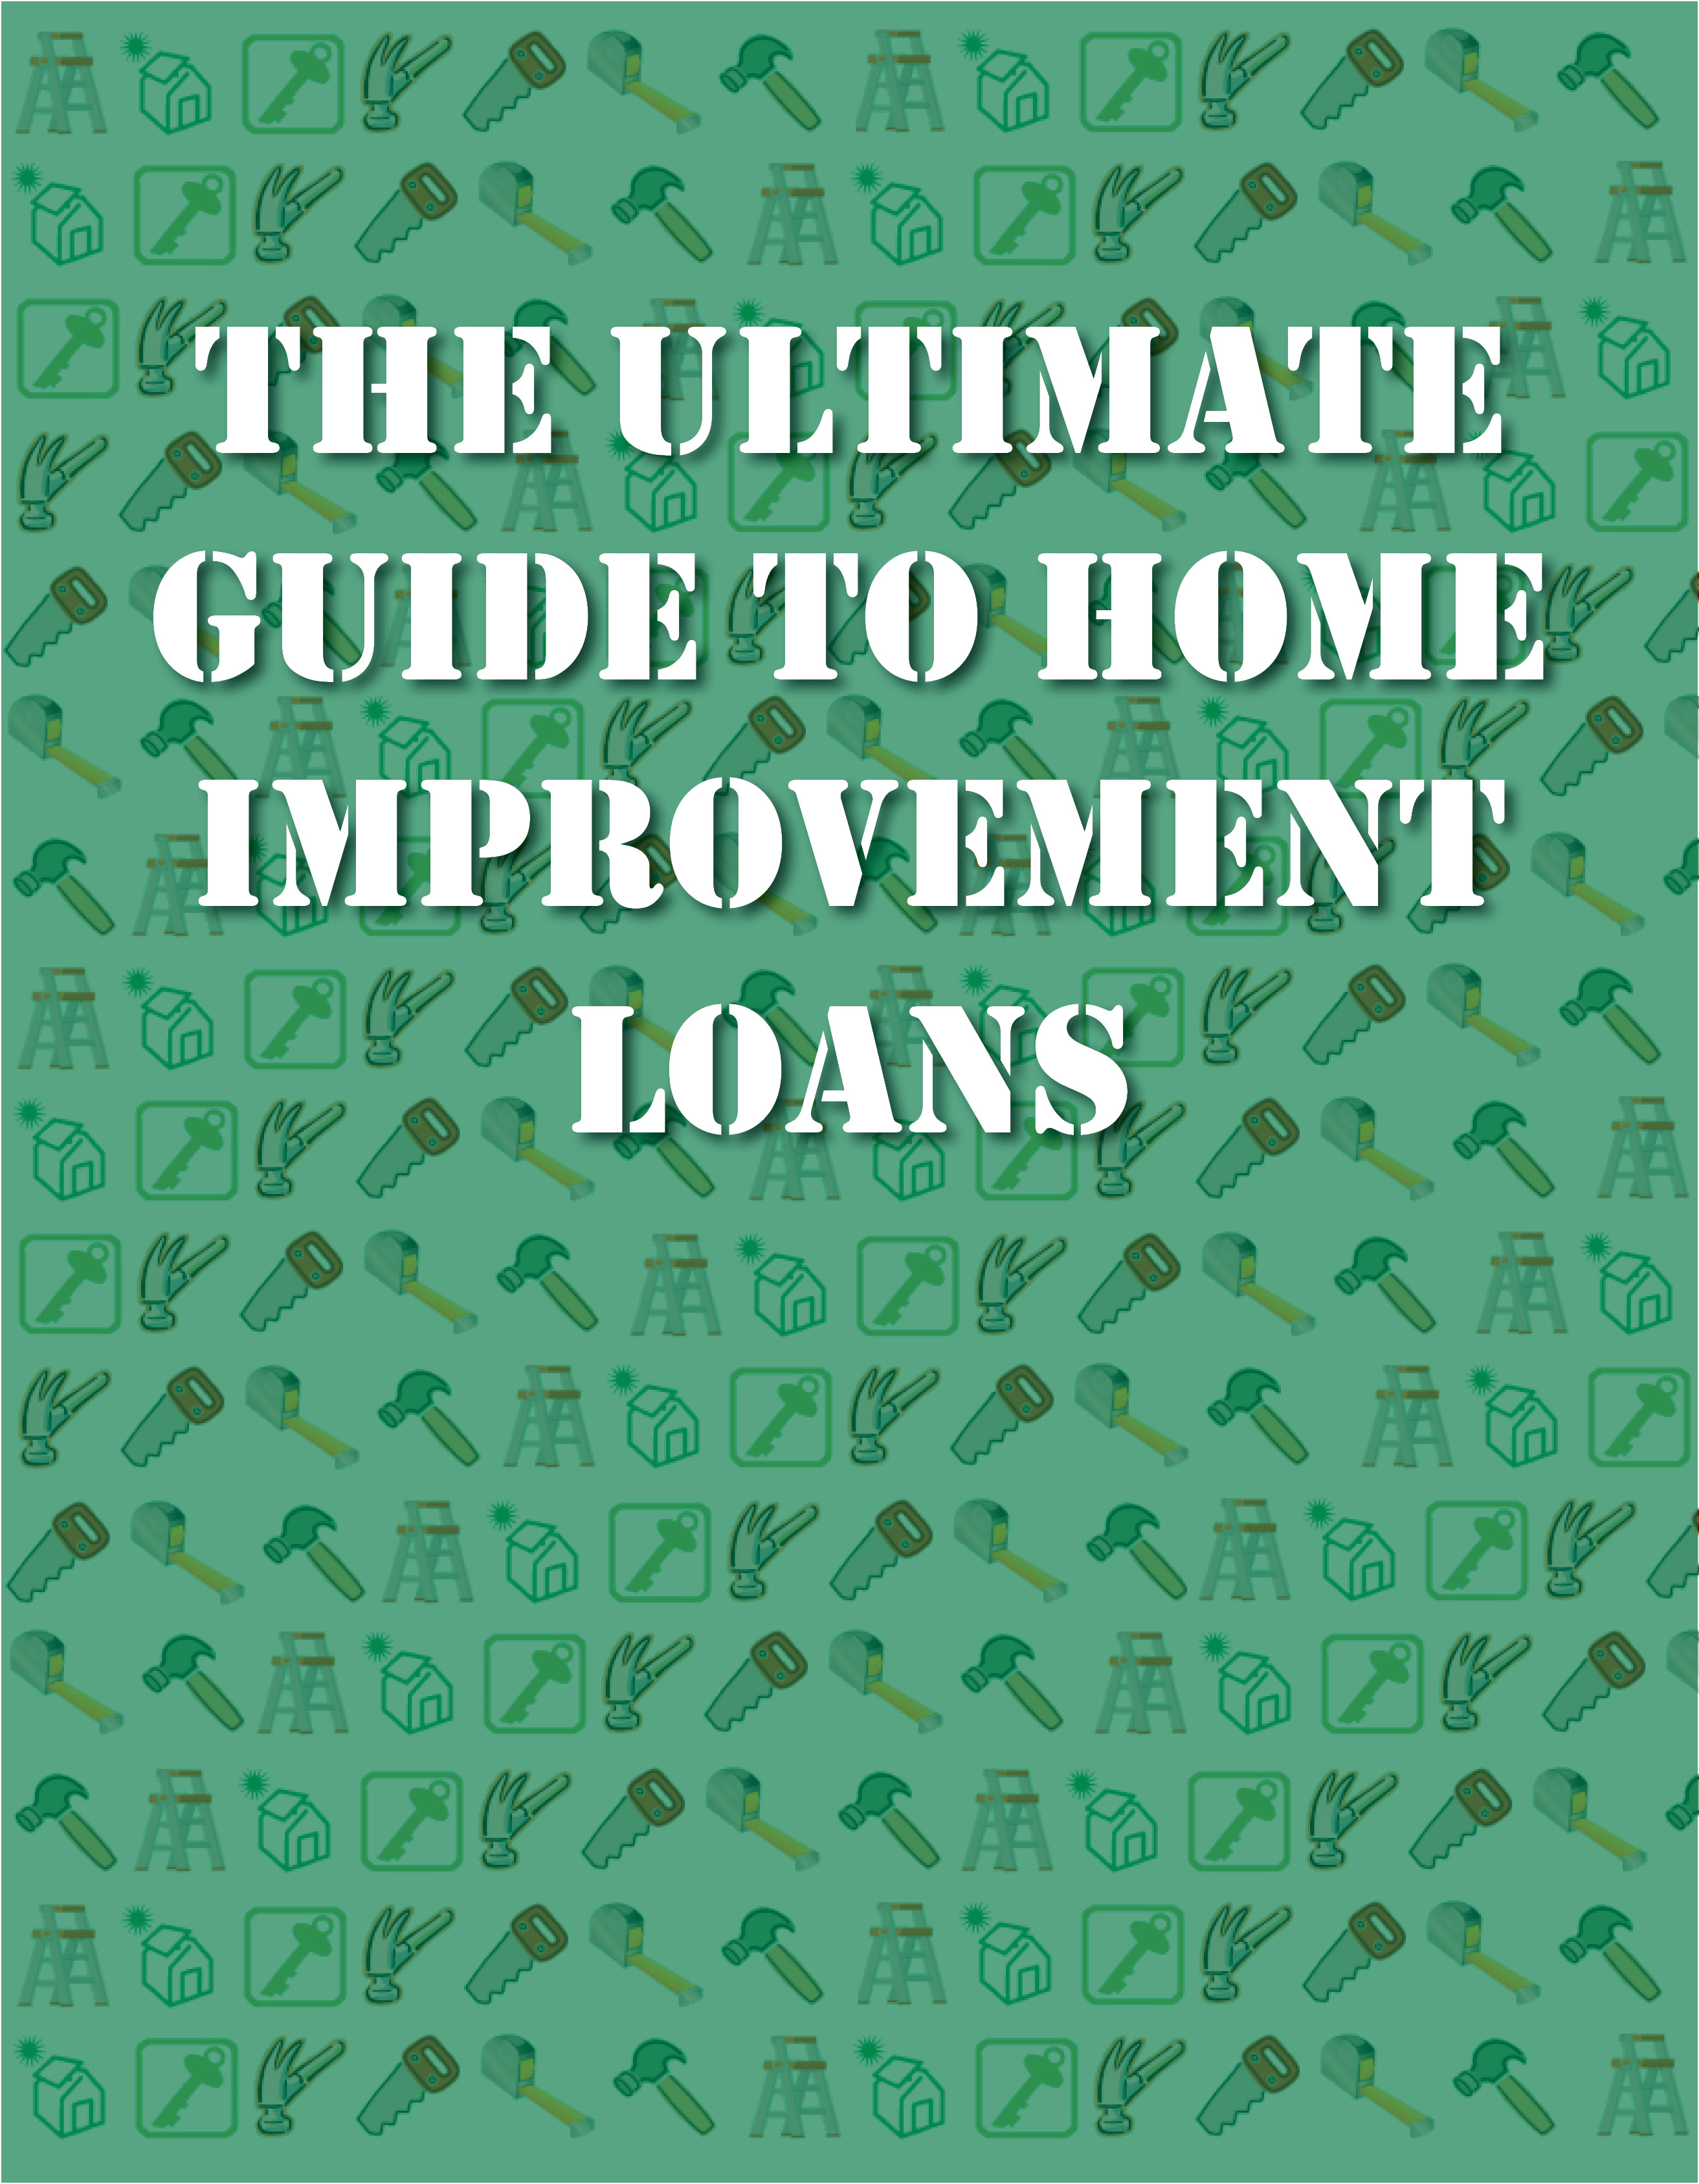 The-Ultimate-Guide-to-Home-Improvement-Loans-cover_2014_250